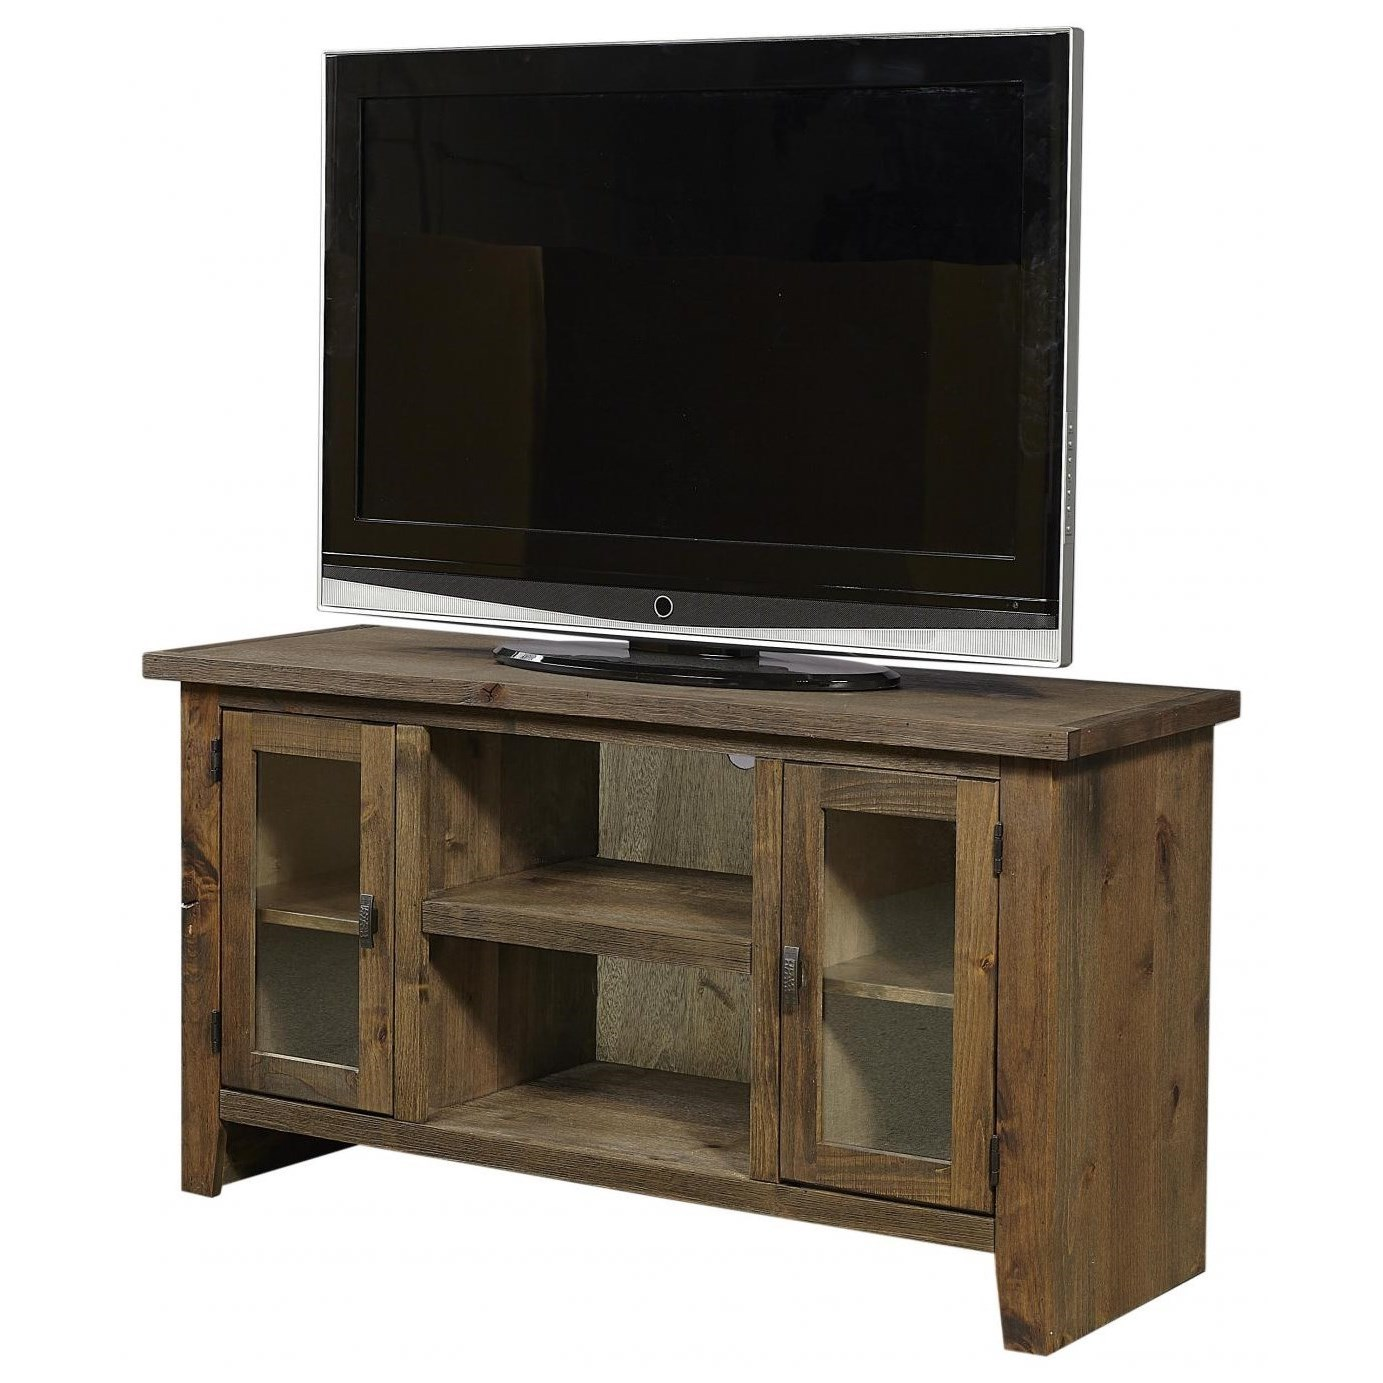 "Alder Grove 50"" Console with Doors by Birch Home at Sprintz Furniture"